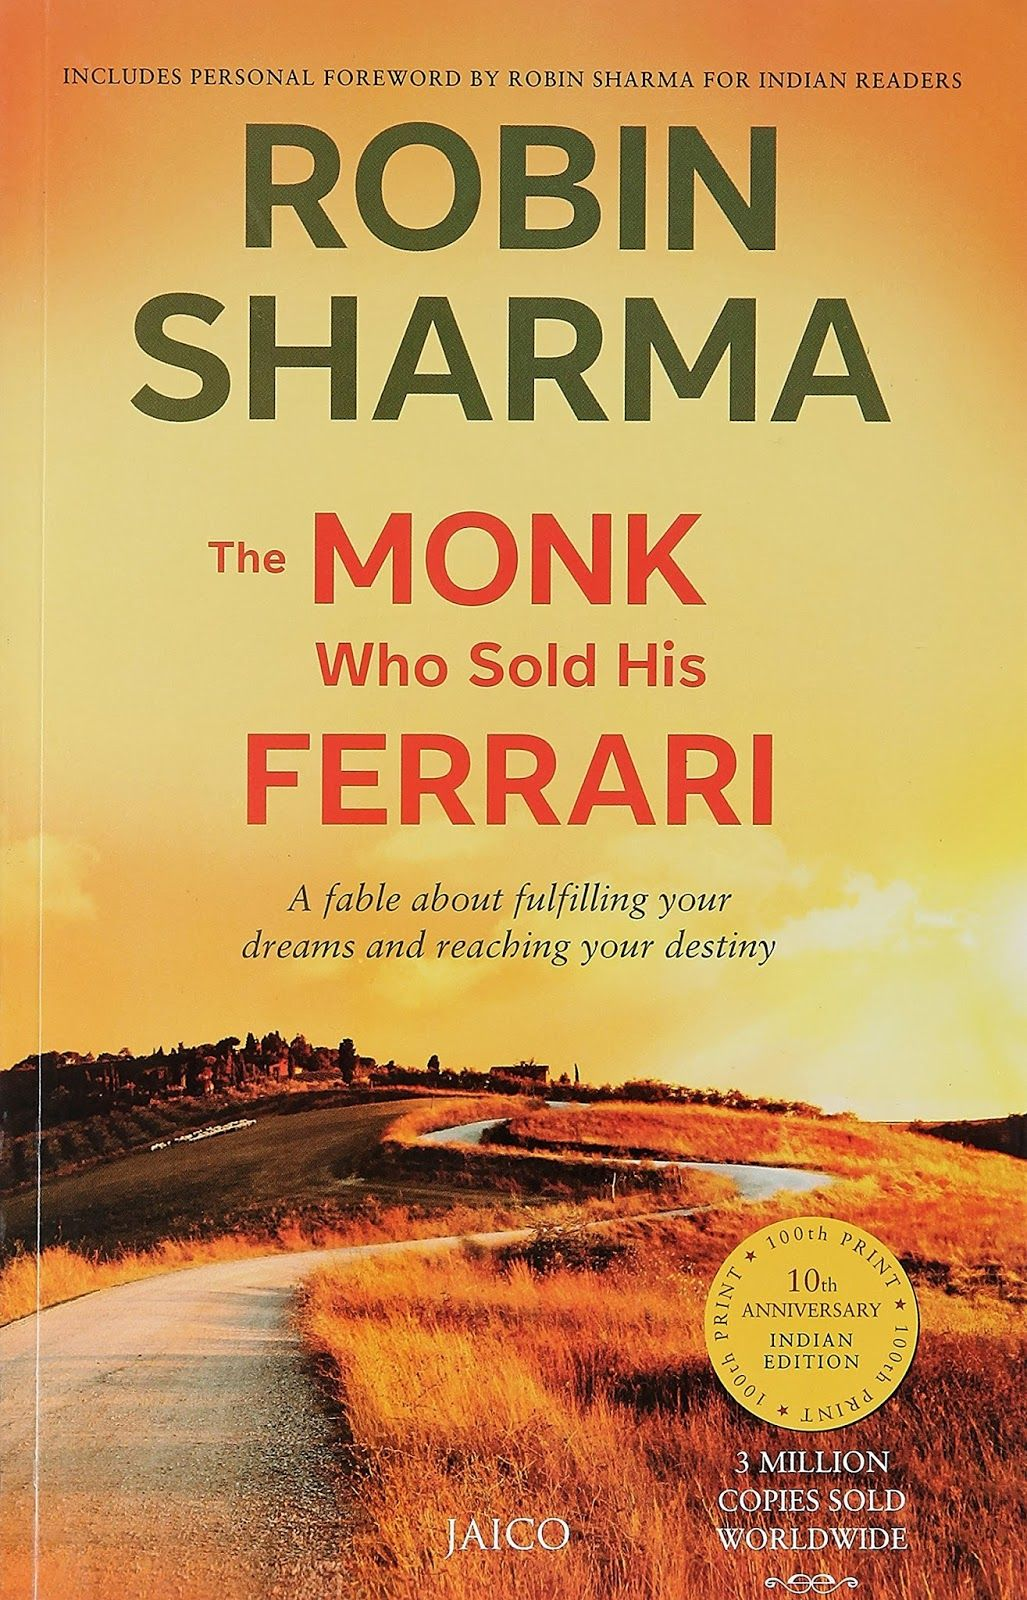 9 Amazing Lessons From The Monk Who Sold His Ferrari With